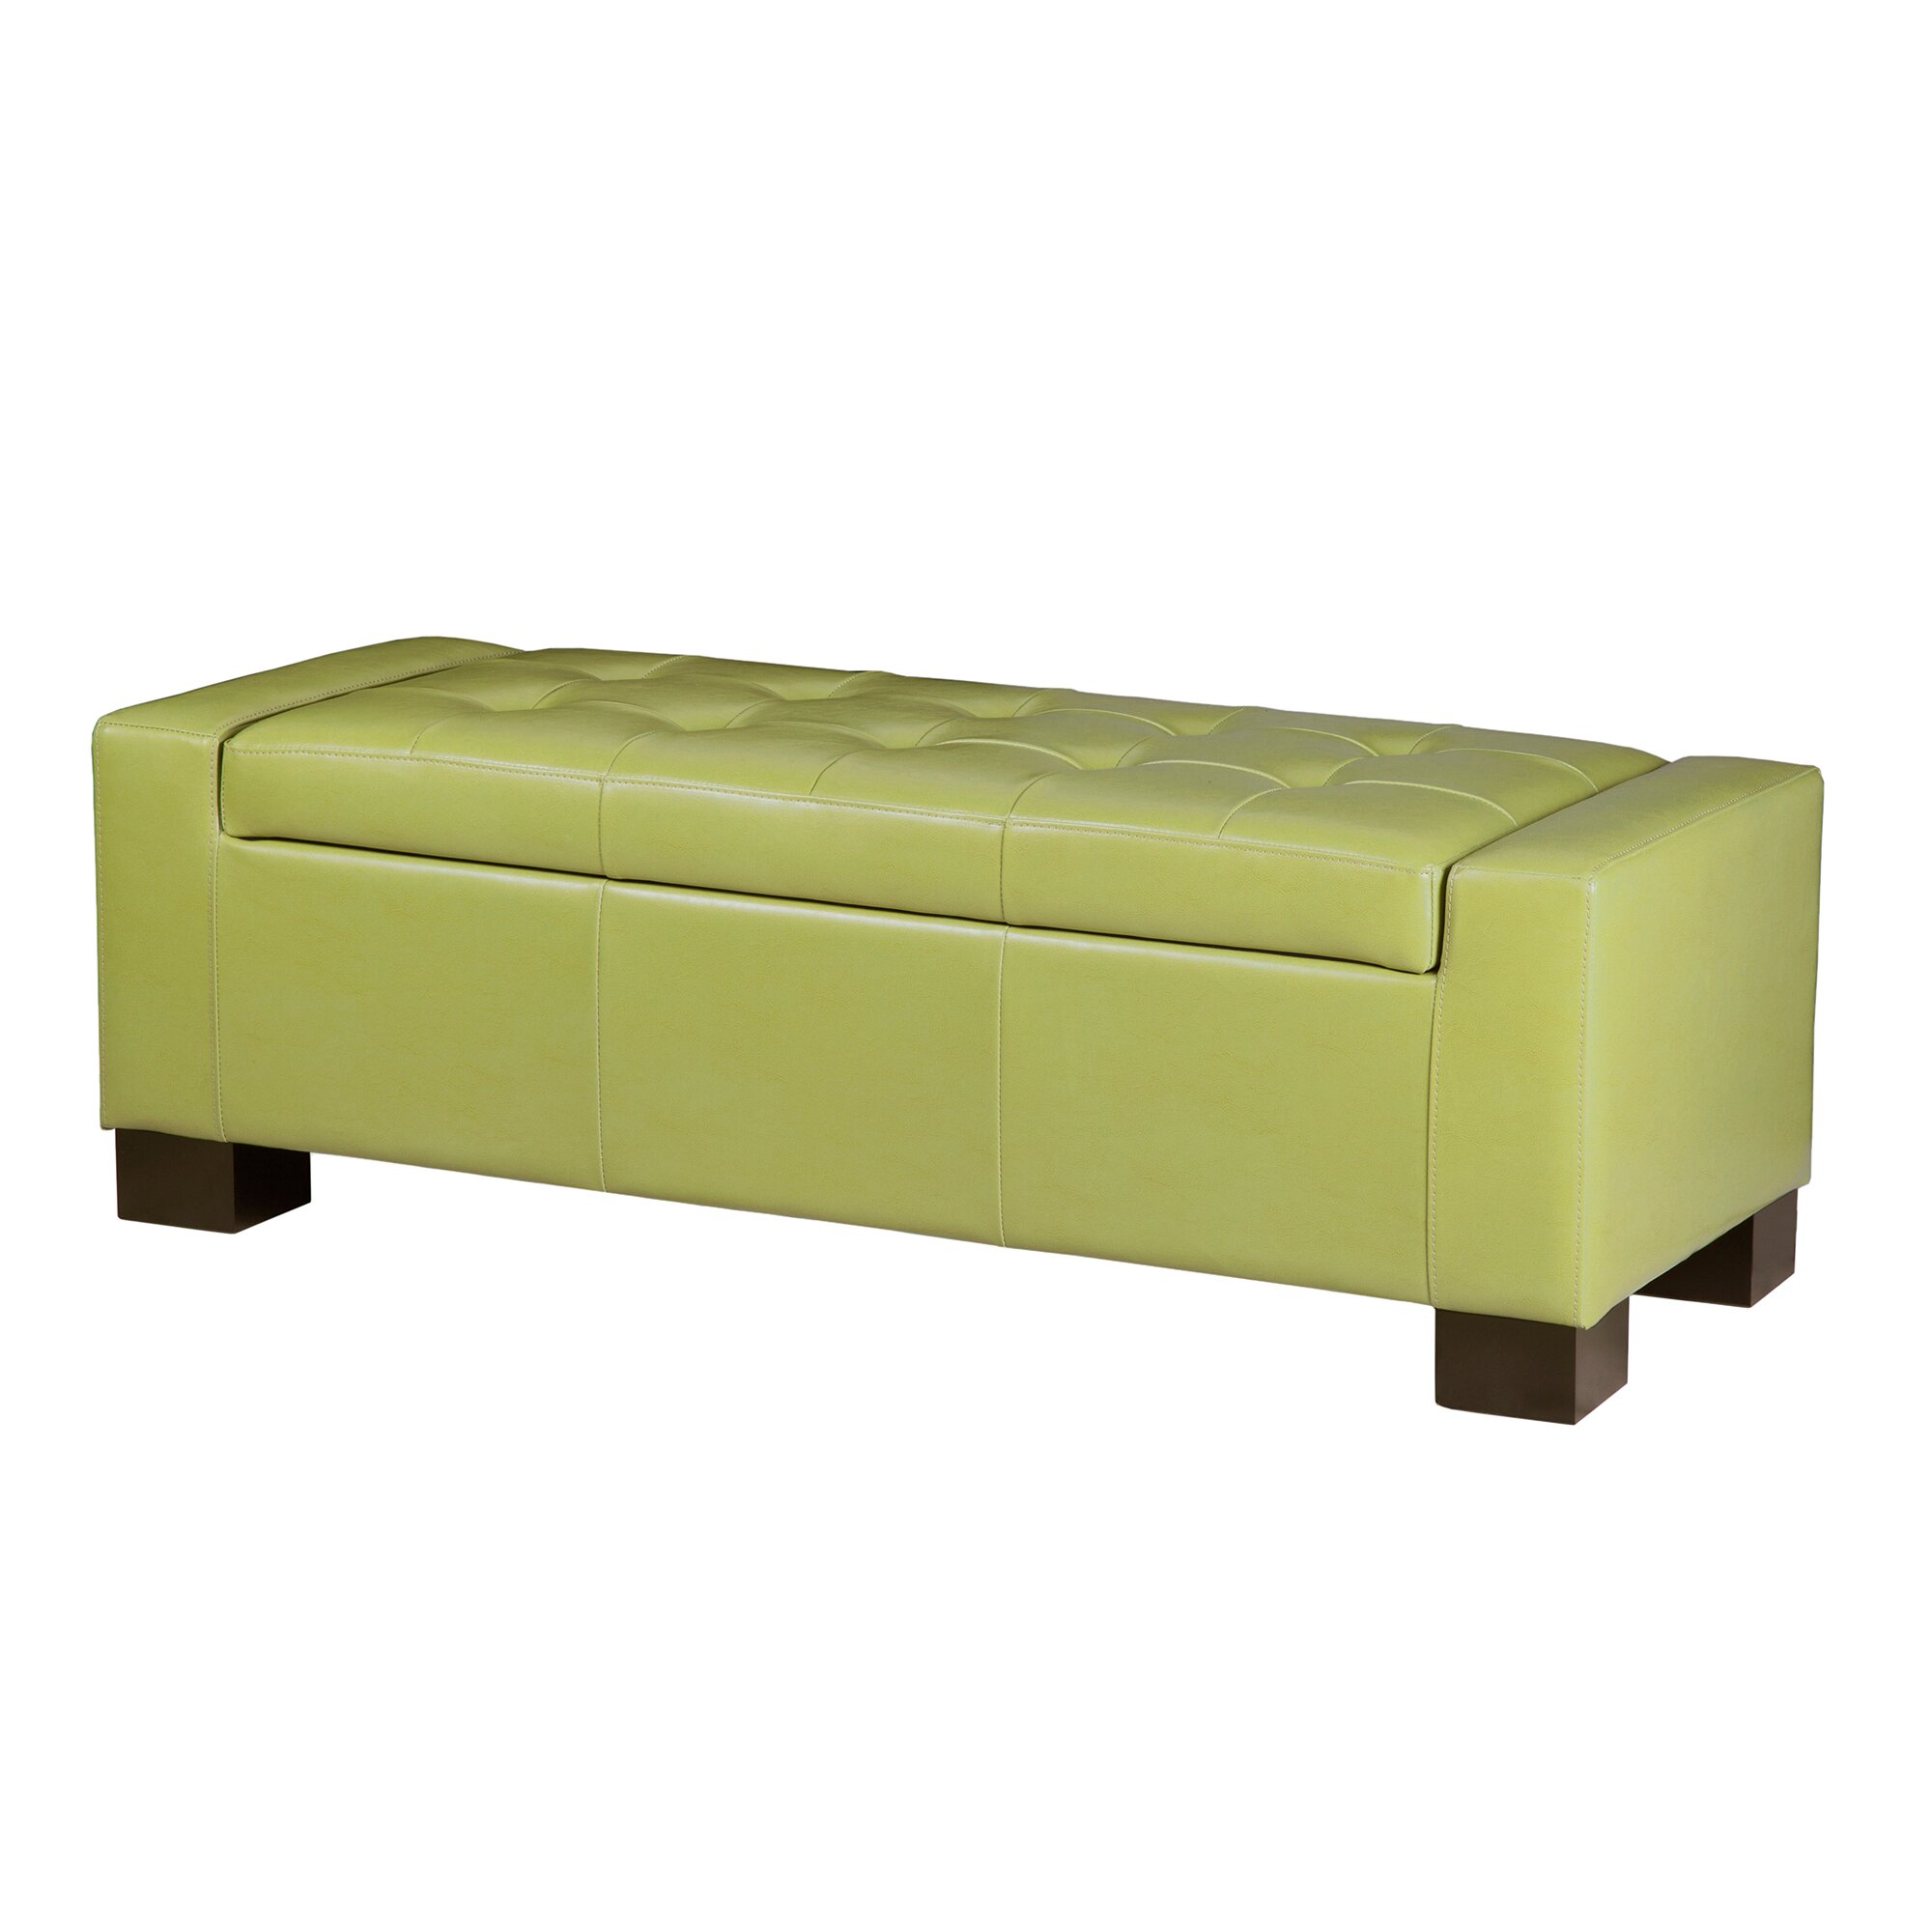 Madison Park Mirage Bench Tufted Top Storage Ottoman Reviews Wayfair